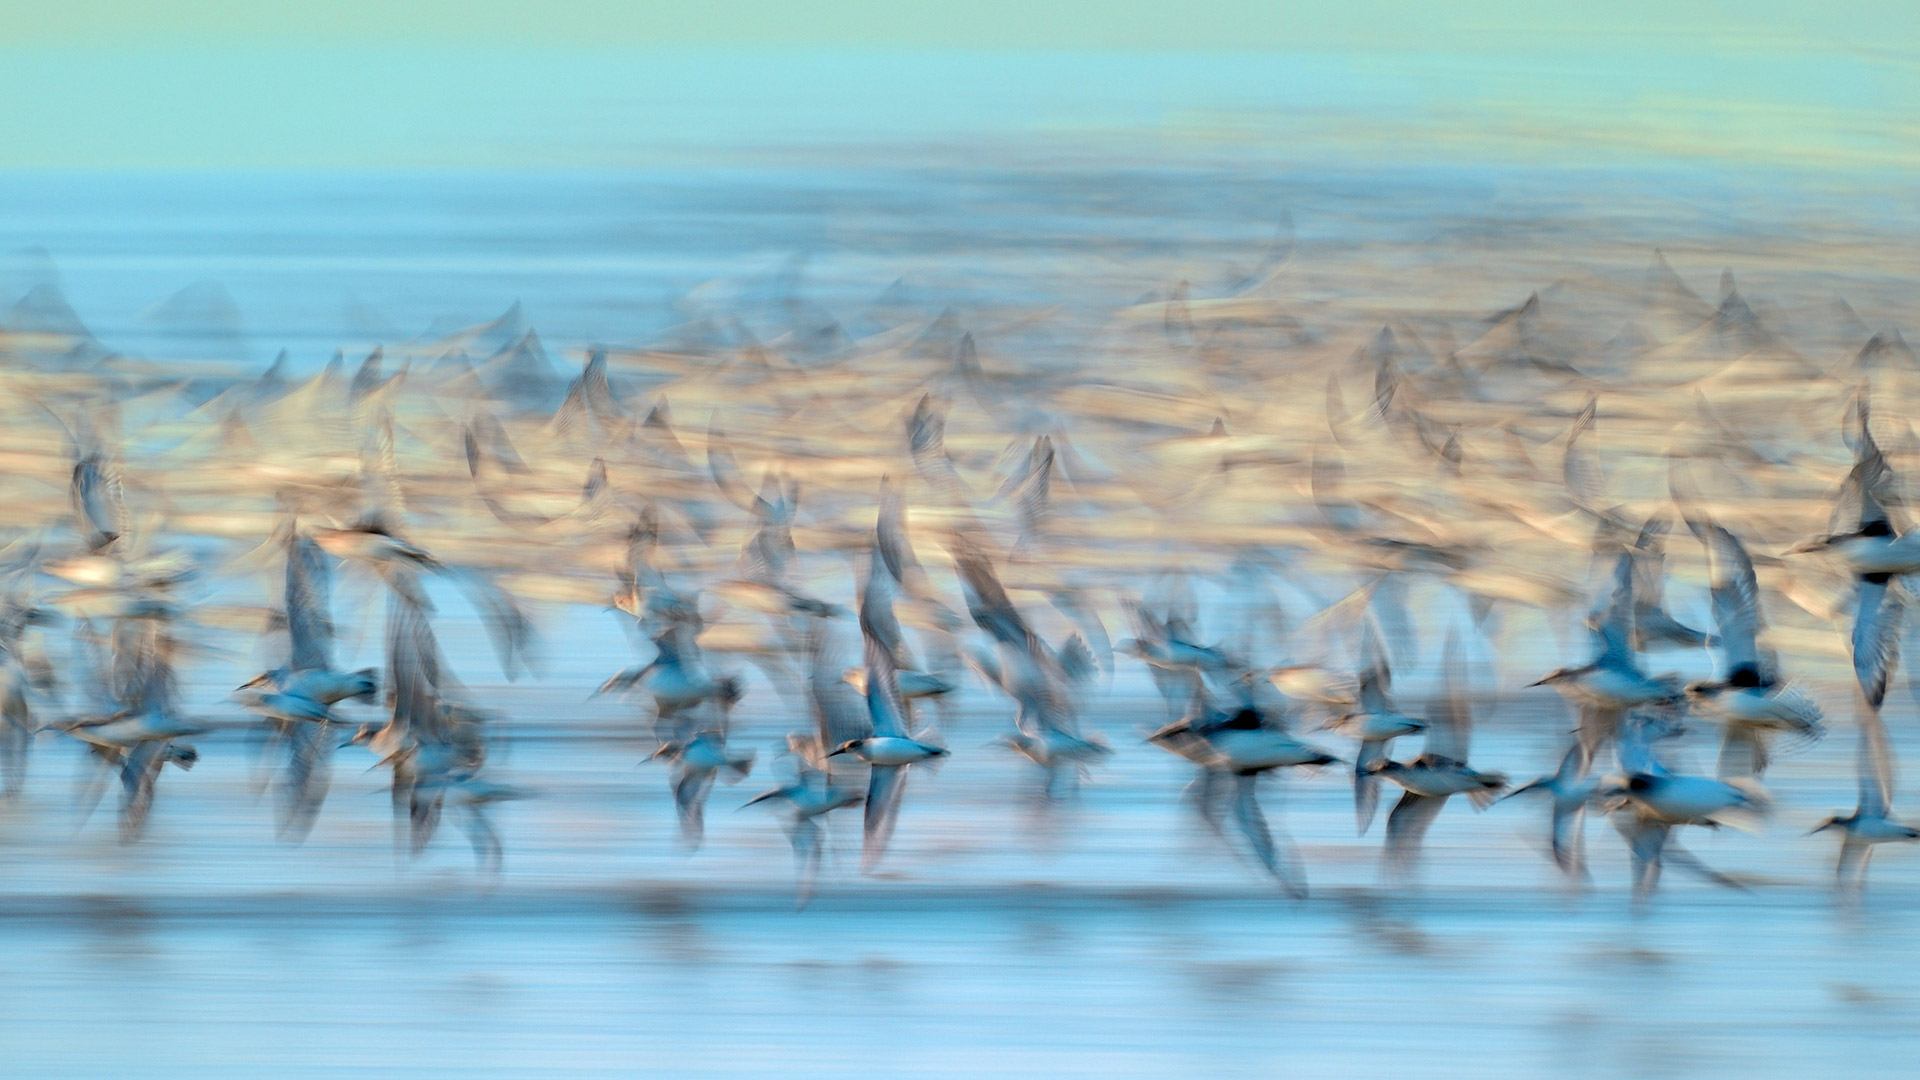 Blurry Flock